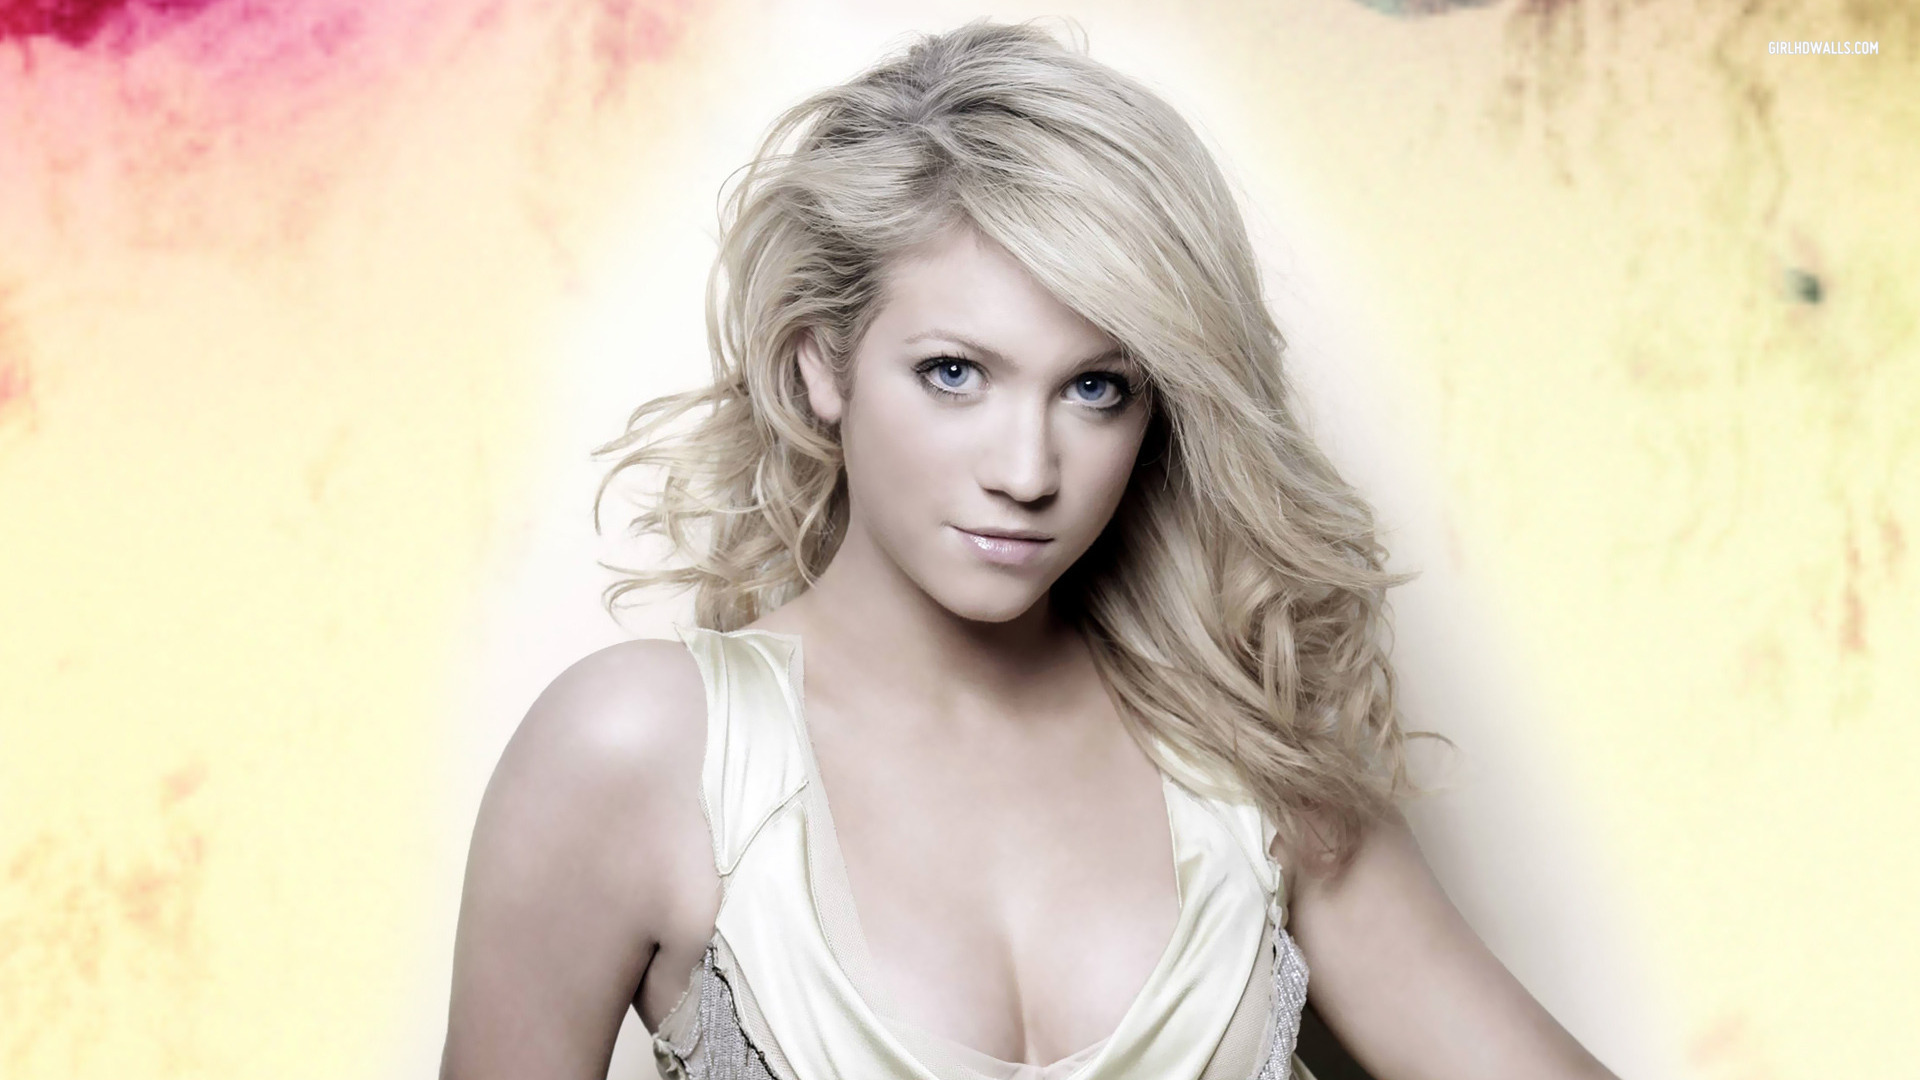 1920x1080 - Brittany Snow Wallpapers 8